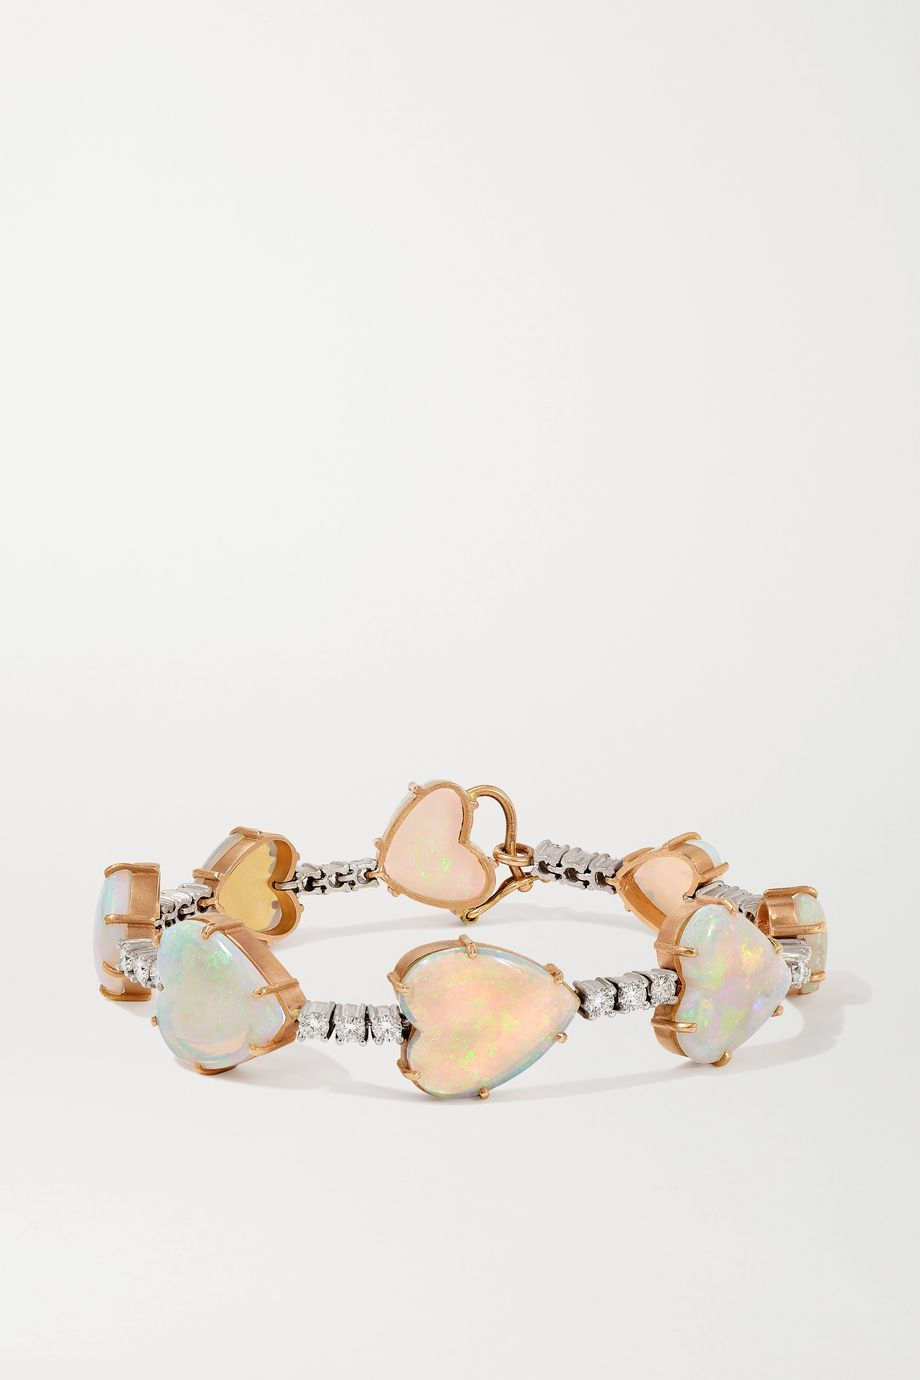 Irene Neuwirth Love 18-karat rose and white gold, opal and diamond bracelet